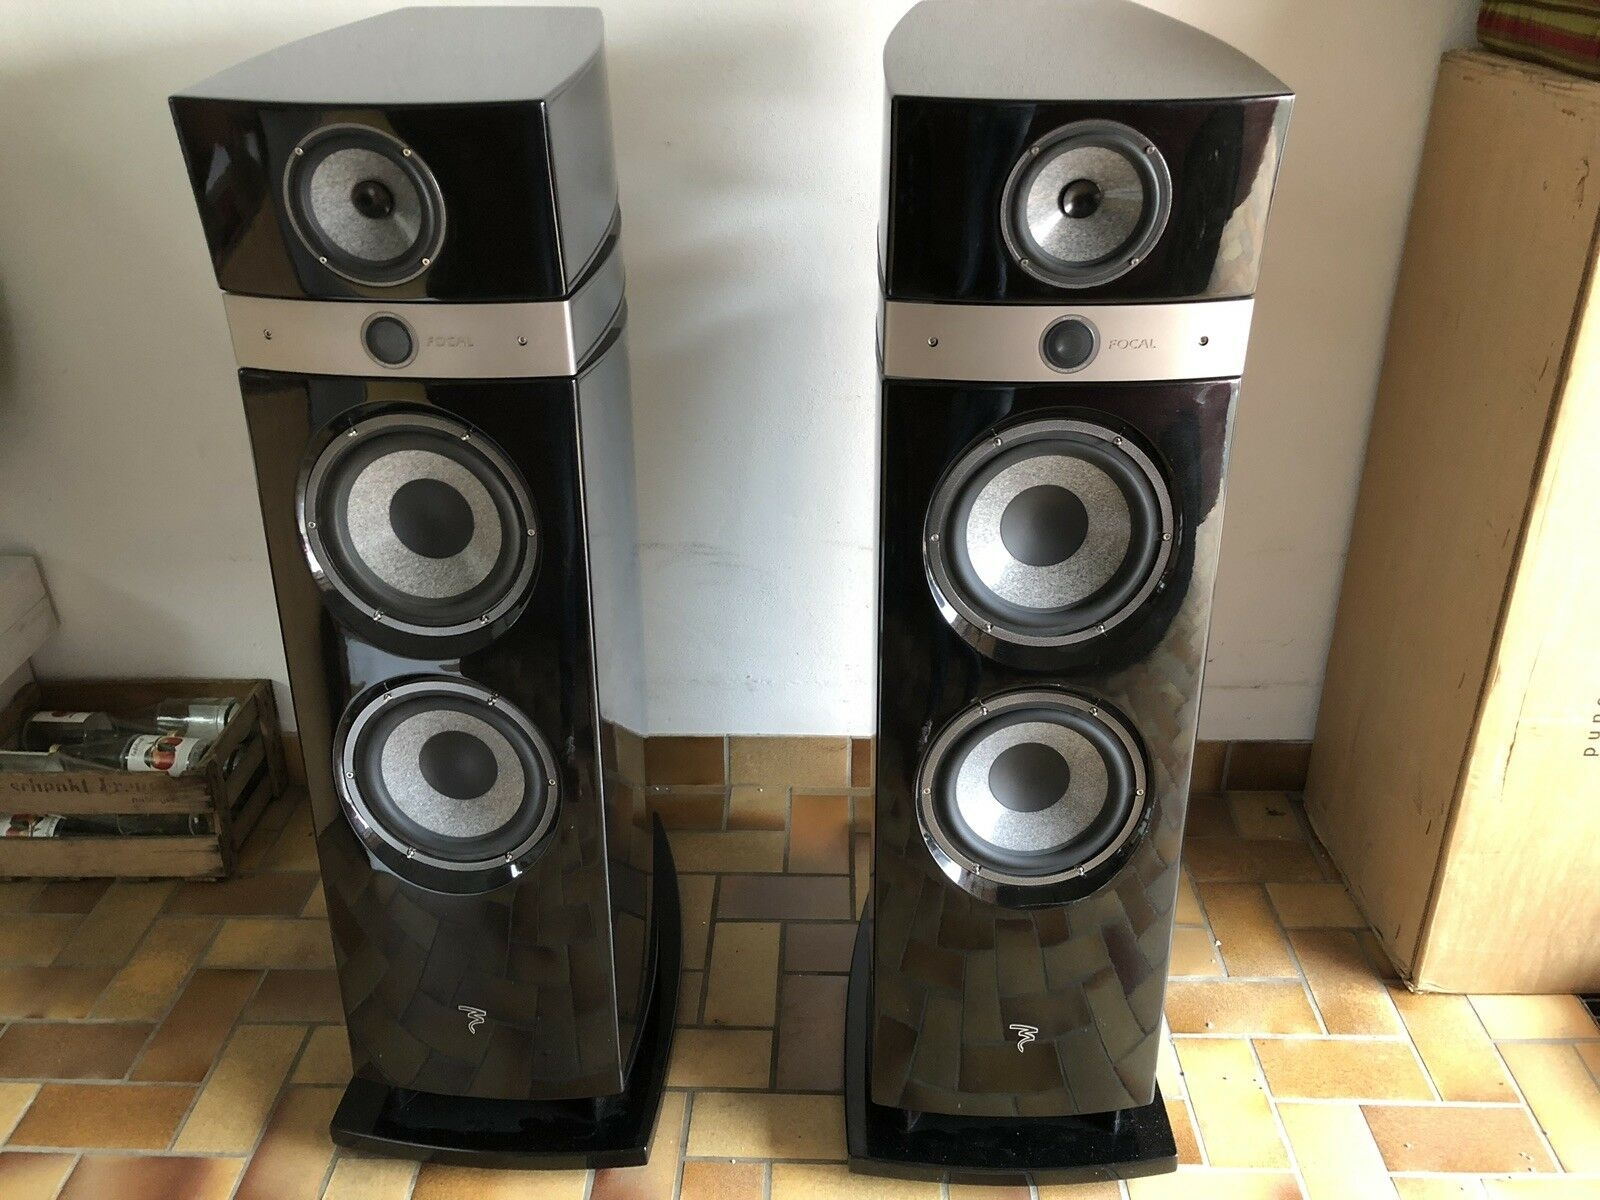 Focal Maestro Utopia High End Standlautsprecher in schwarz